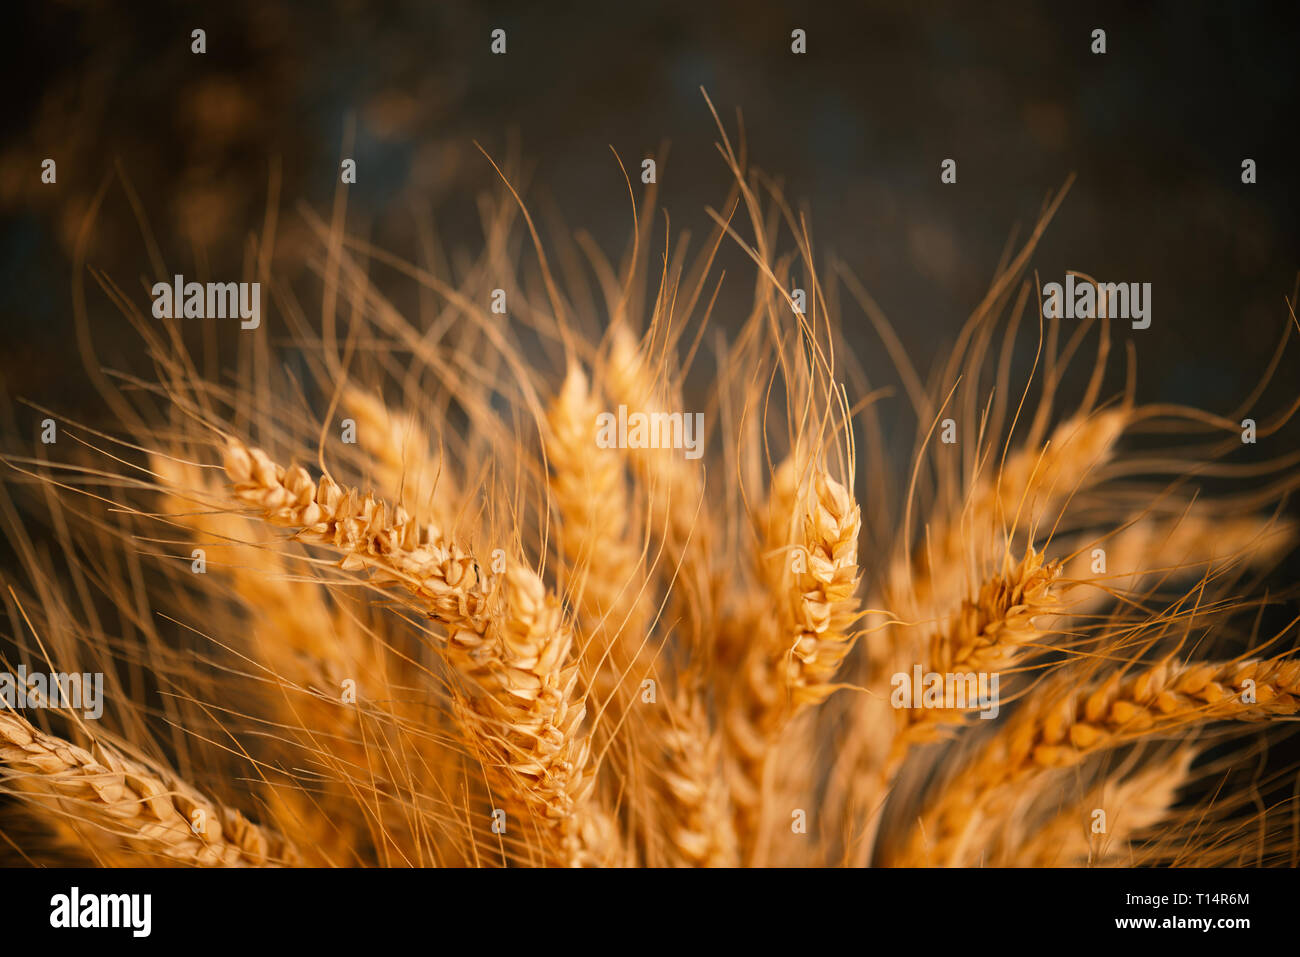 Cereals ears close-up, organic wheat, soft background - Stock Image